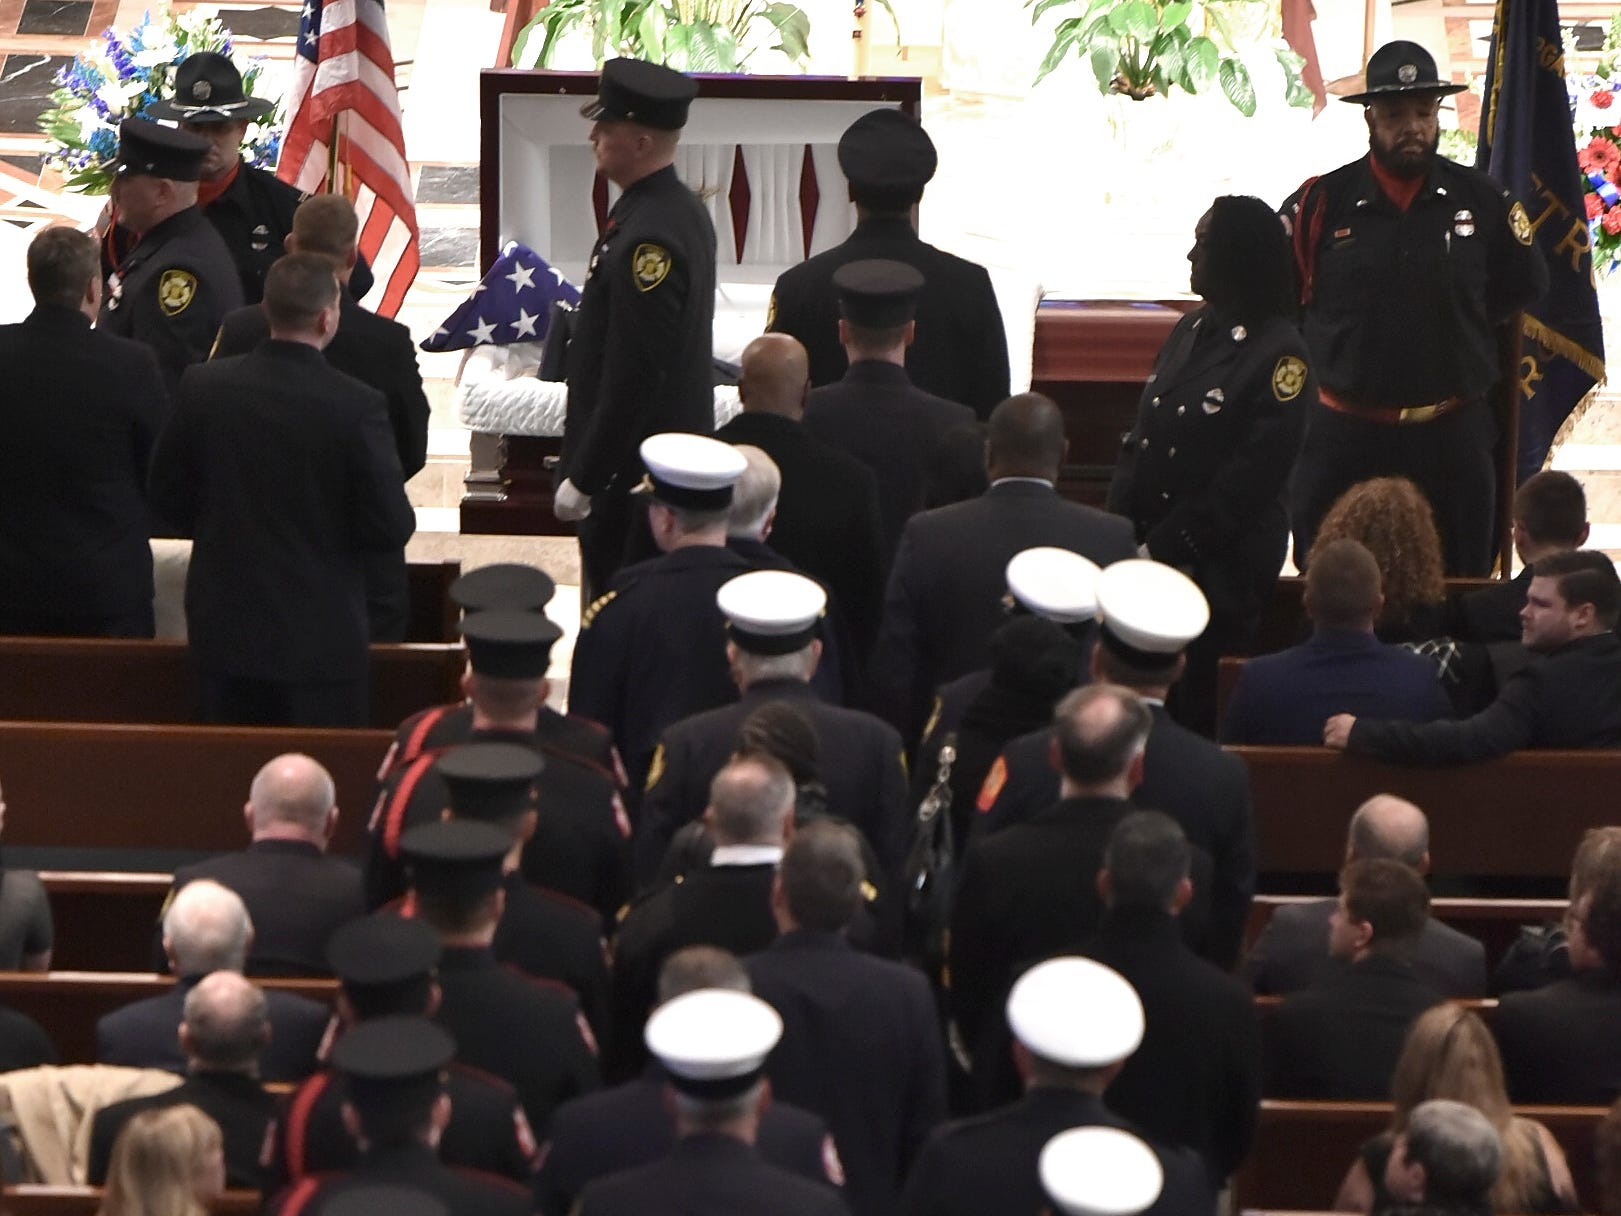 Fire department chiefs wearing white hats file into the church with rank-and-file firefighters at the beginning of the service.